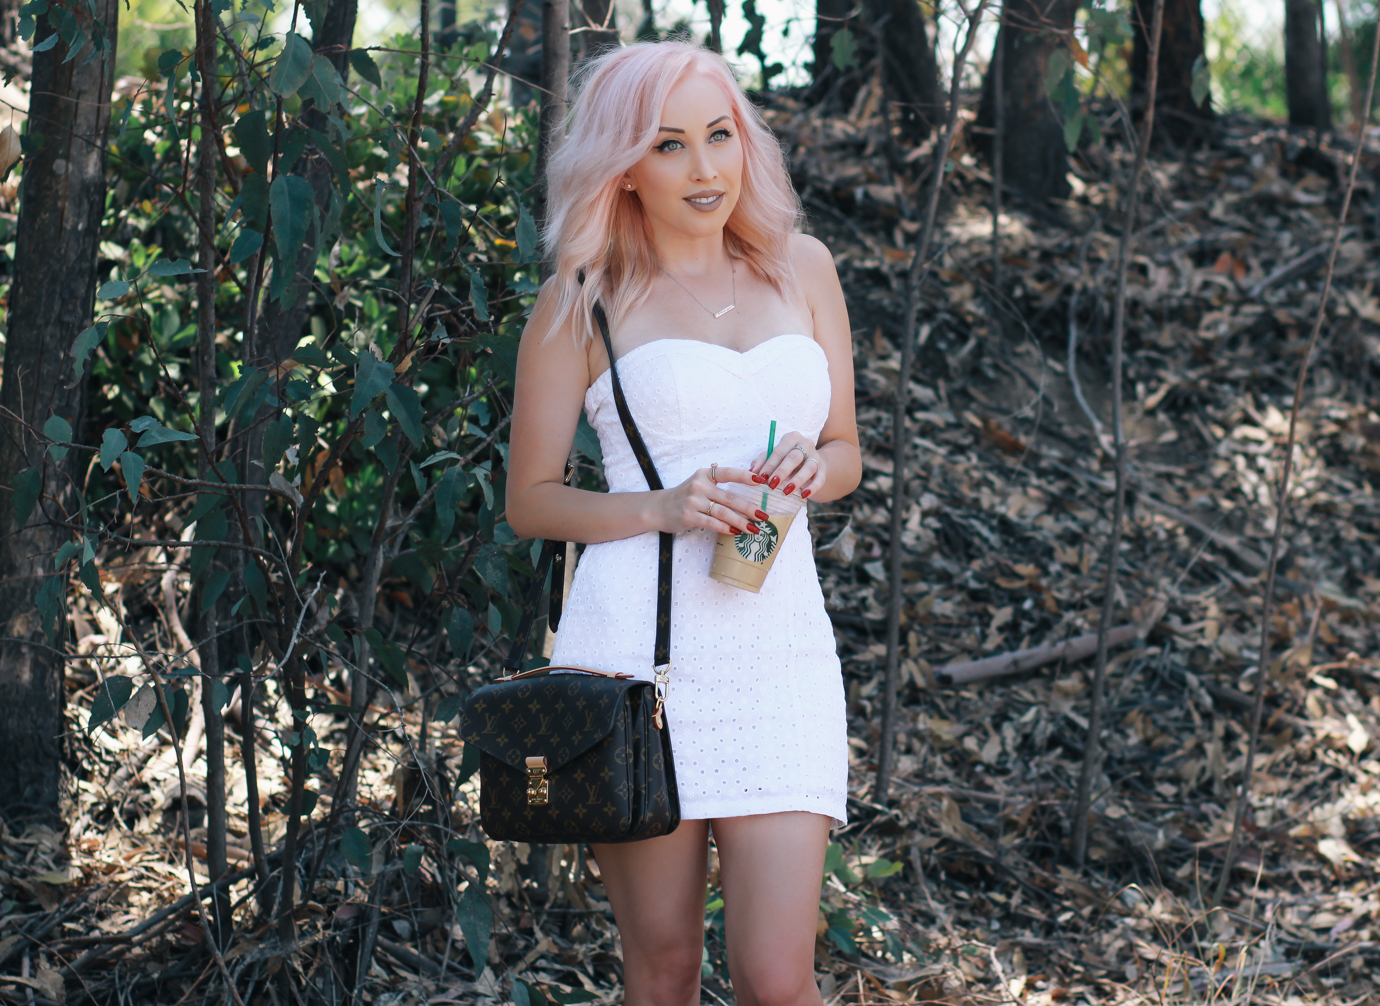 Blondie in the City | Pastel Pink Hair | Life Is Too Short To Have Boring Hair | White Summer Dress